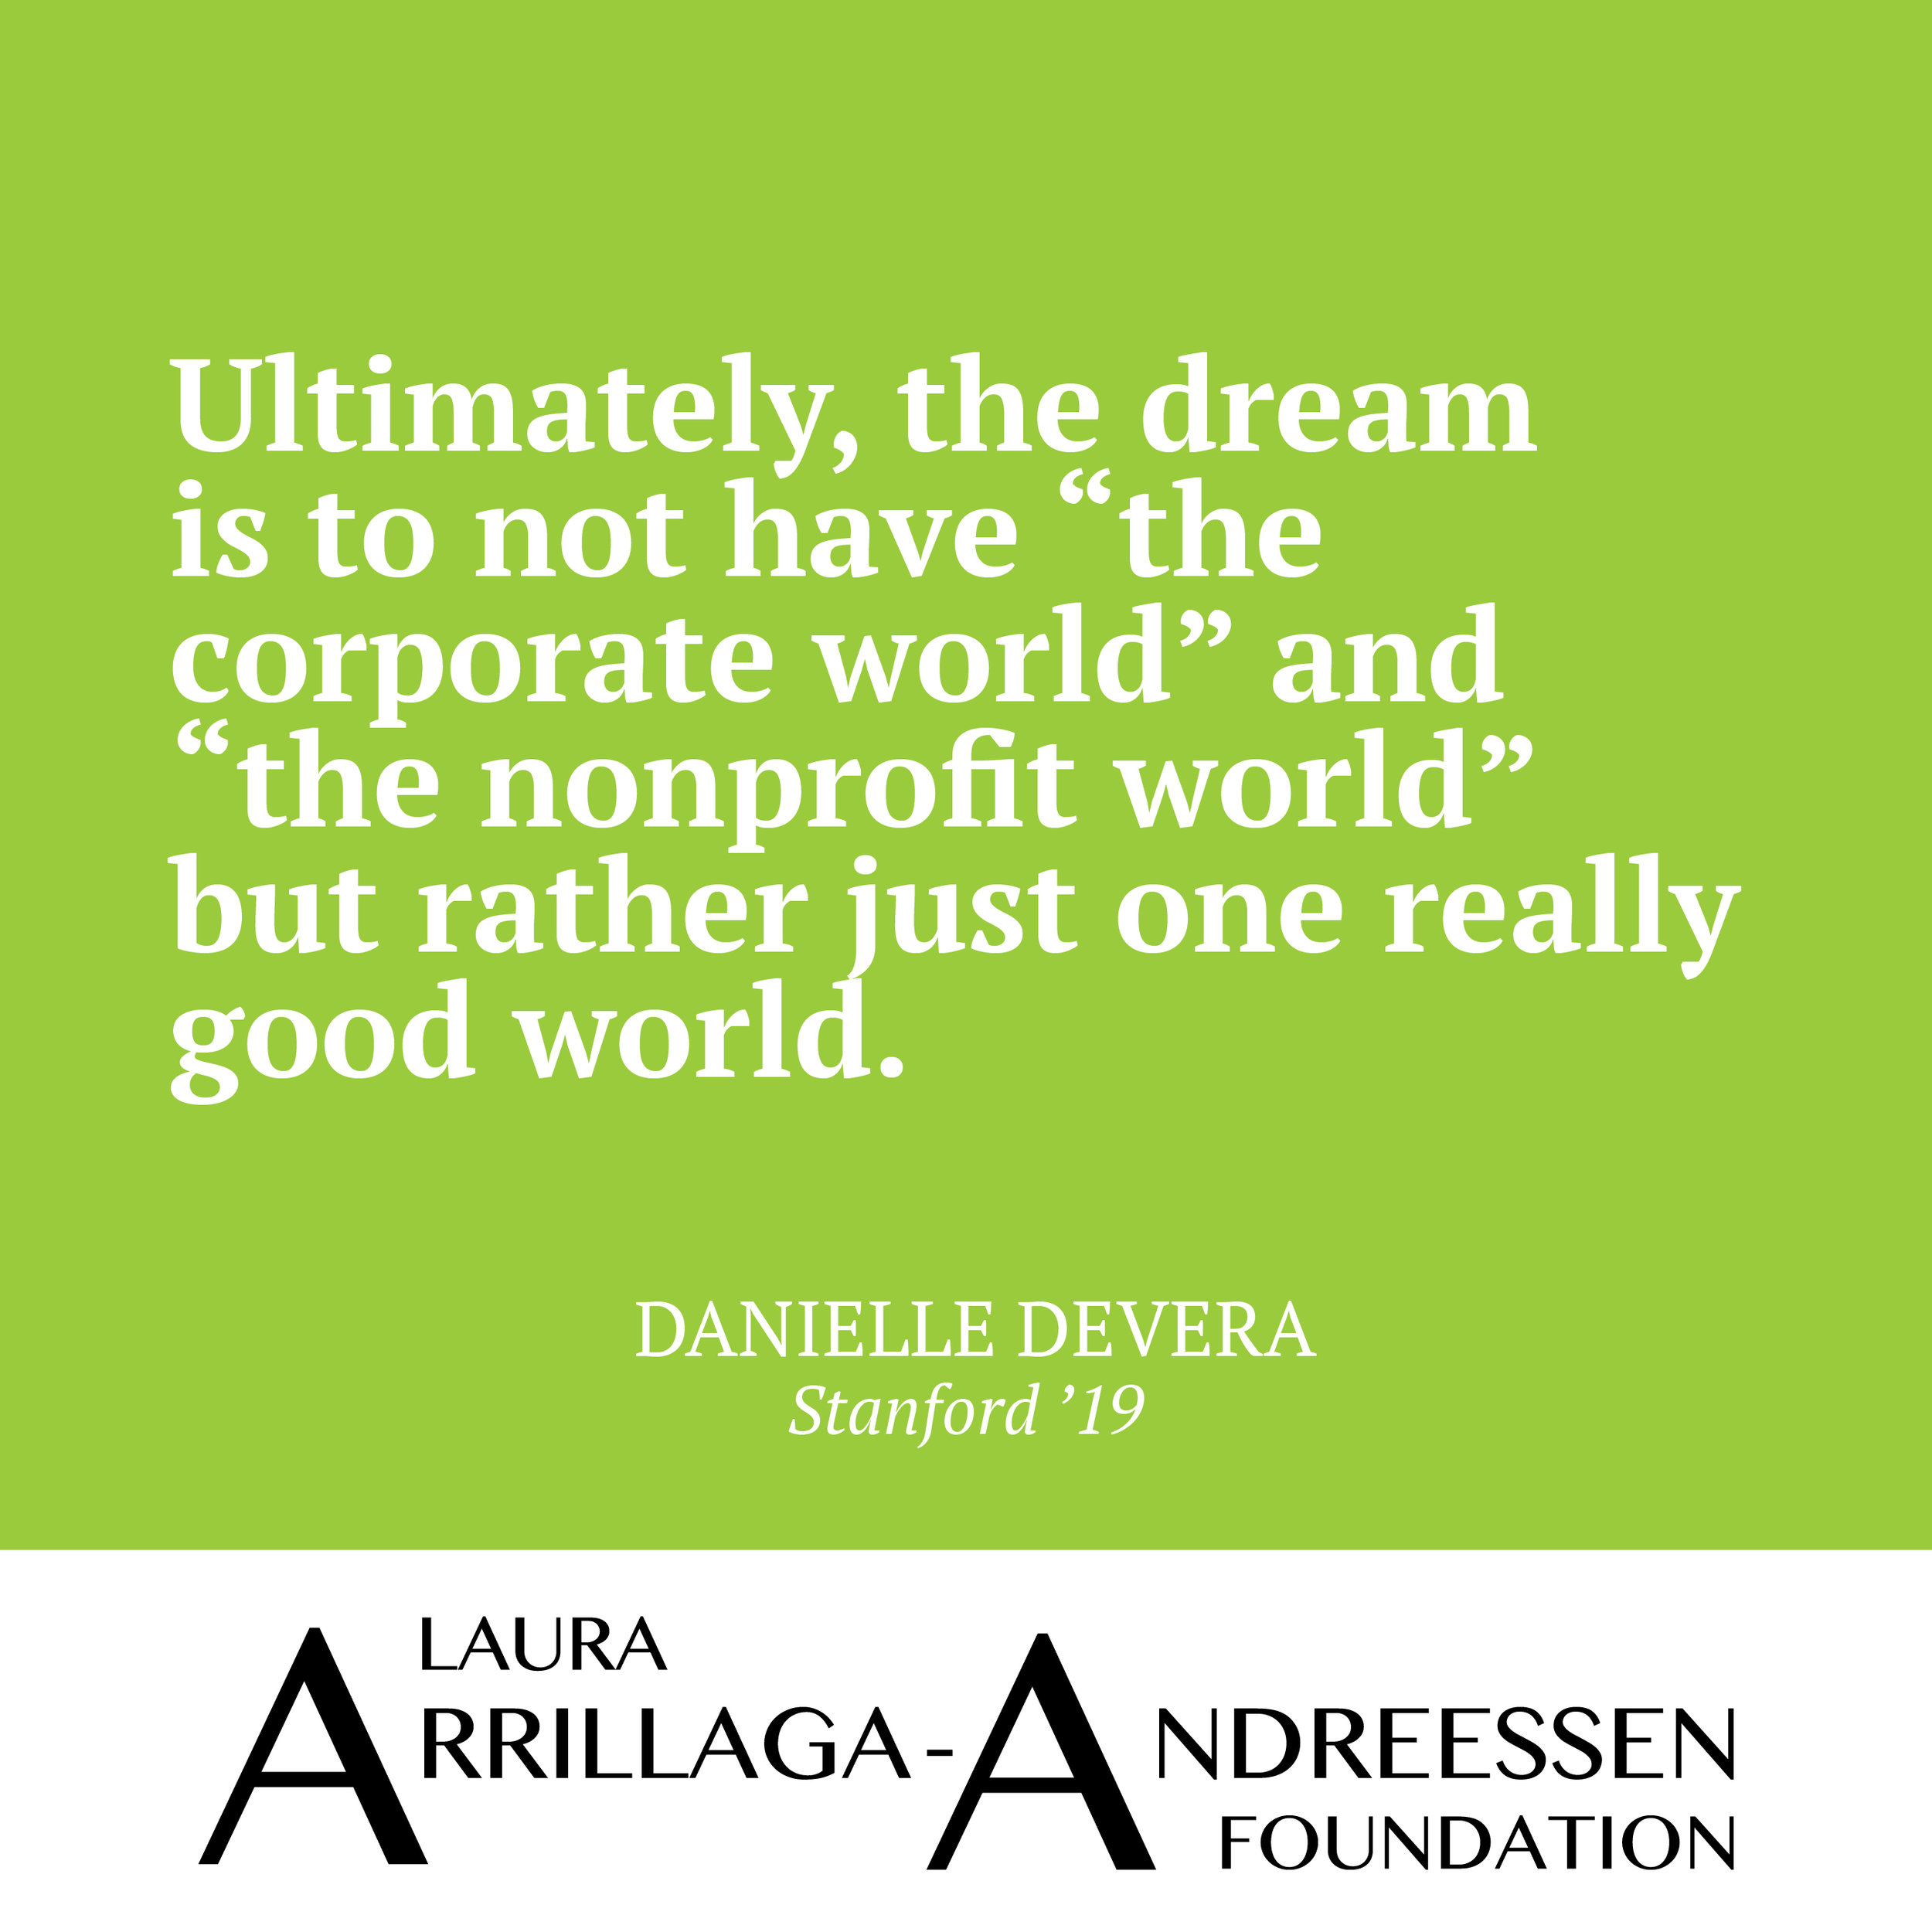 Danielle DeVera quote 4